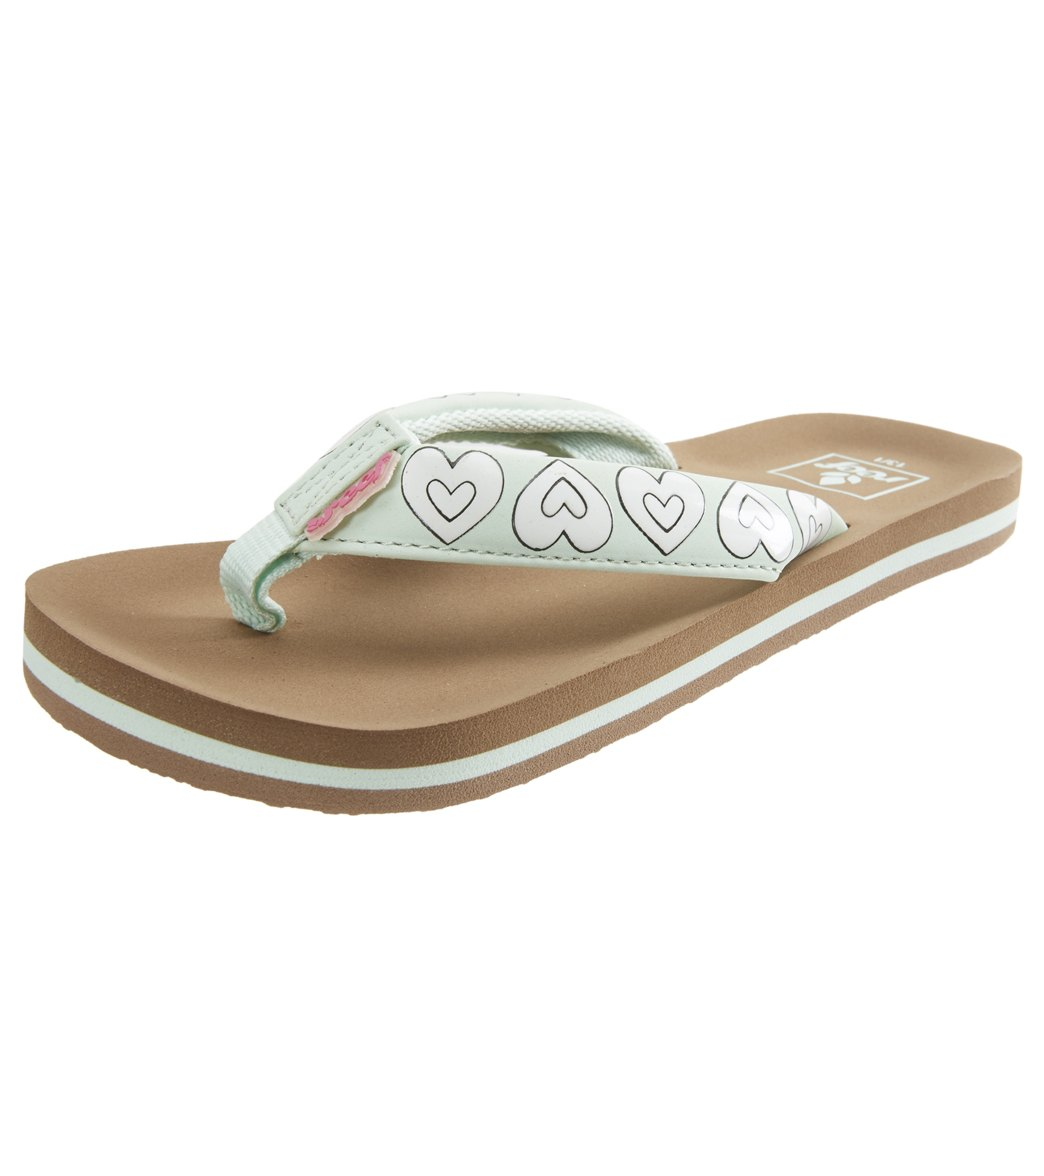 960462ff547 Reef Girls  Ahi Color Change Flip Flop (Little Kid